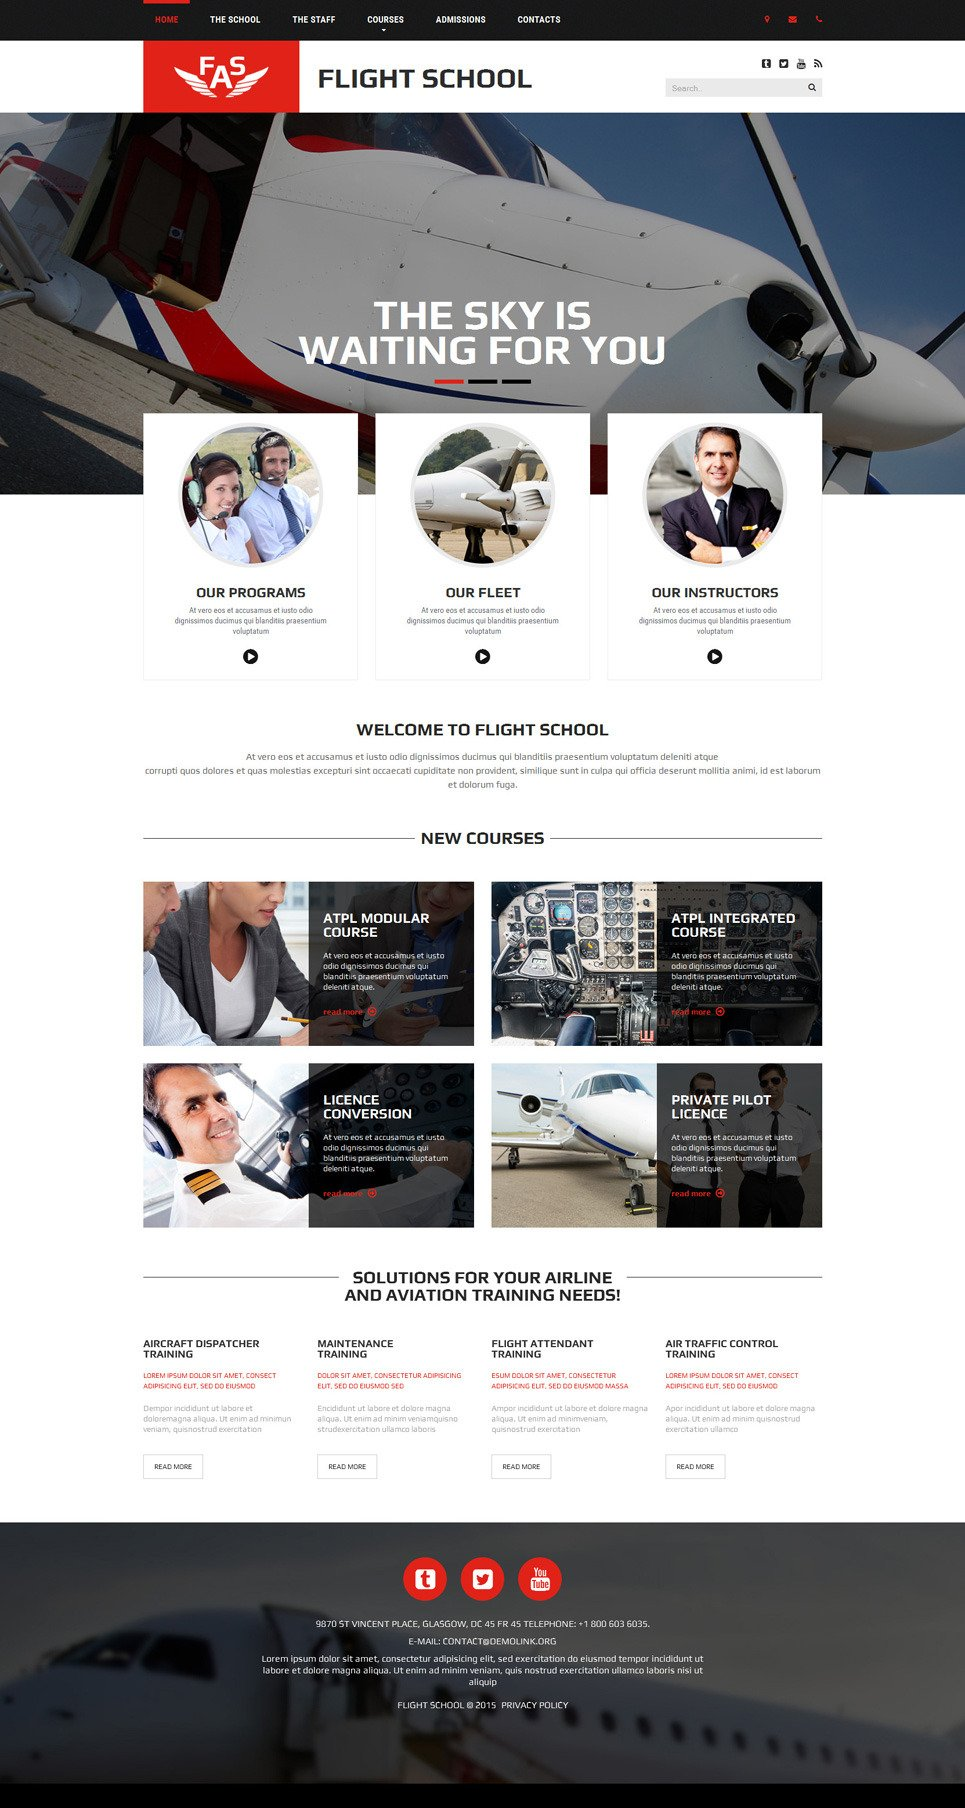 FAS Website Template New Screenshots BIG